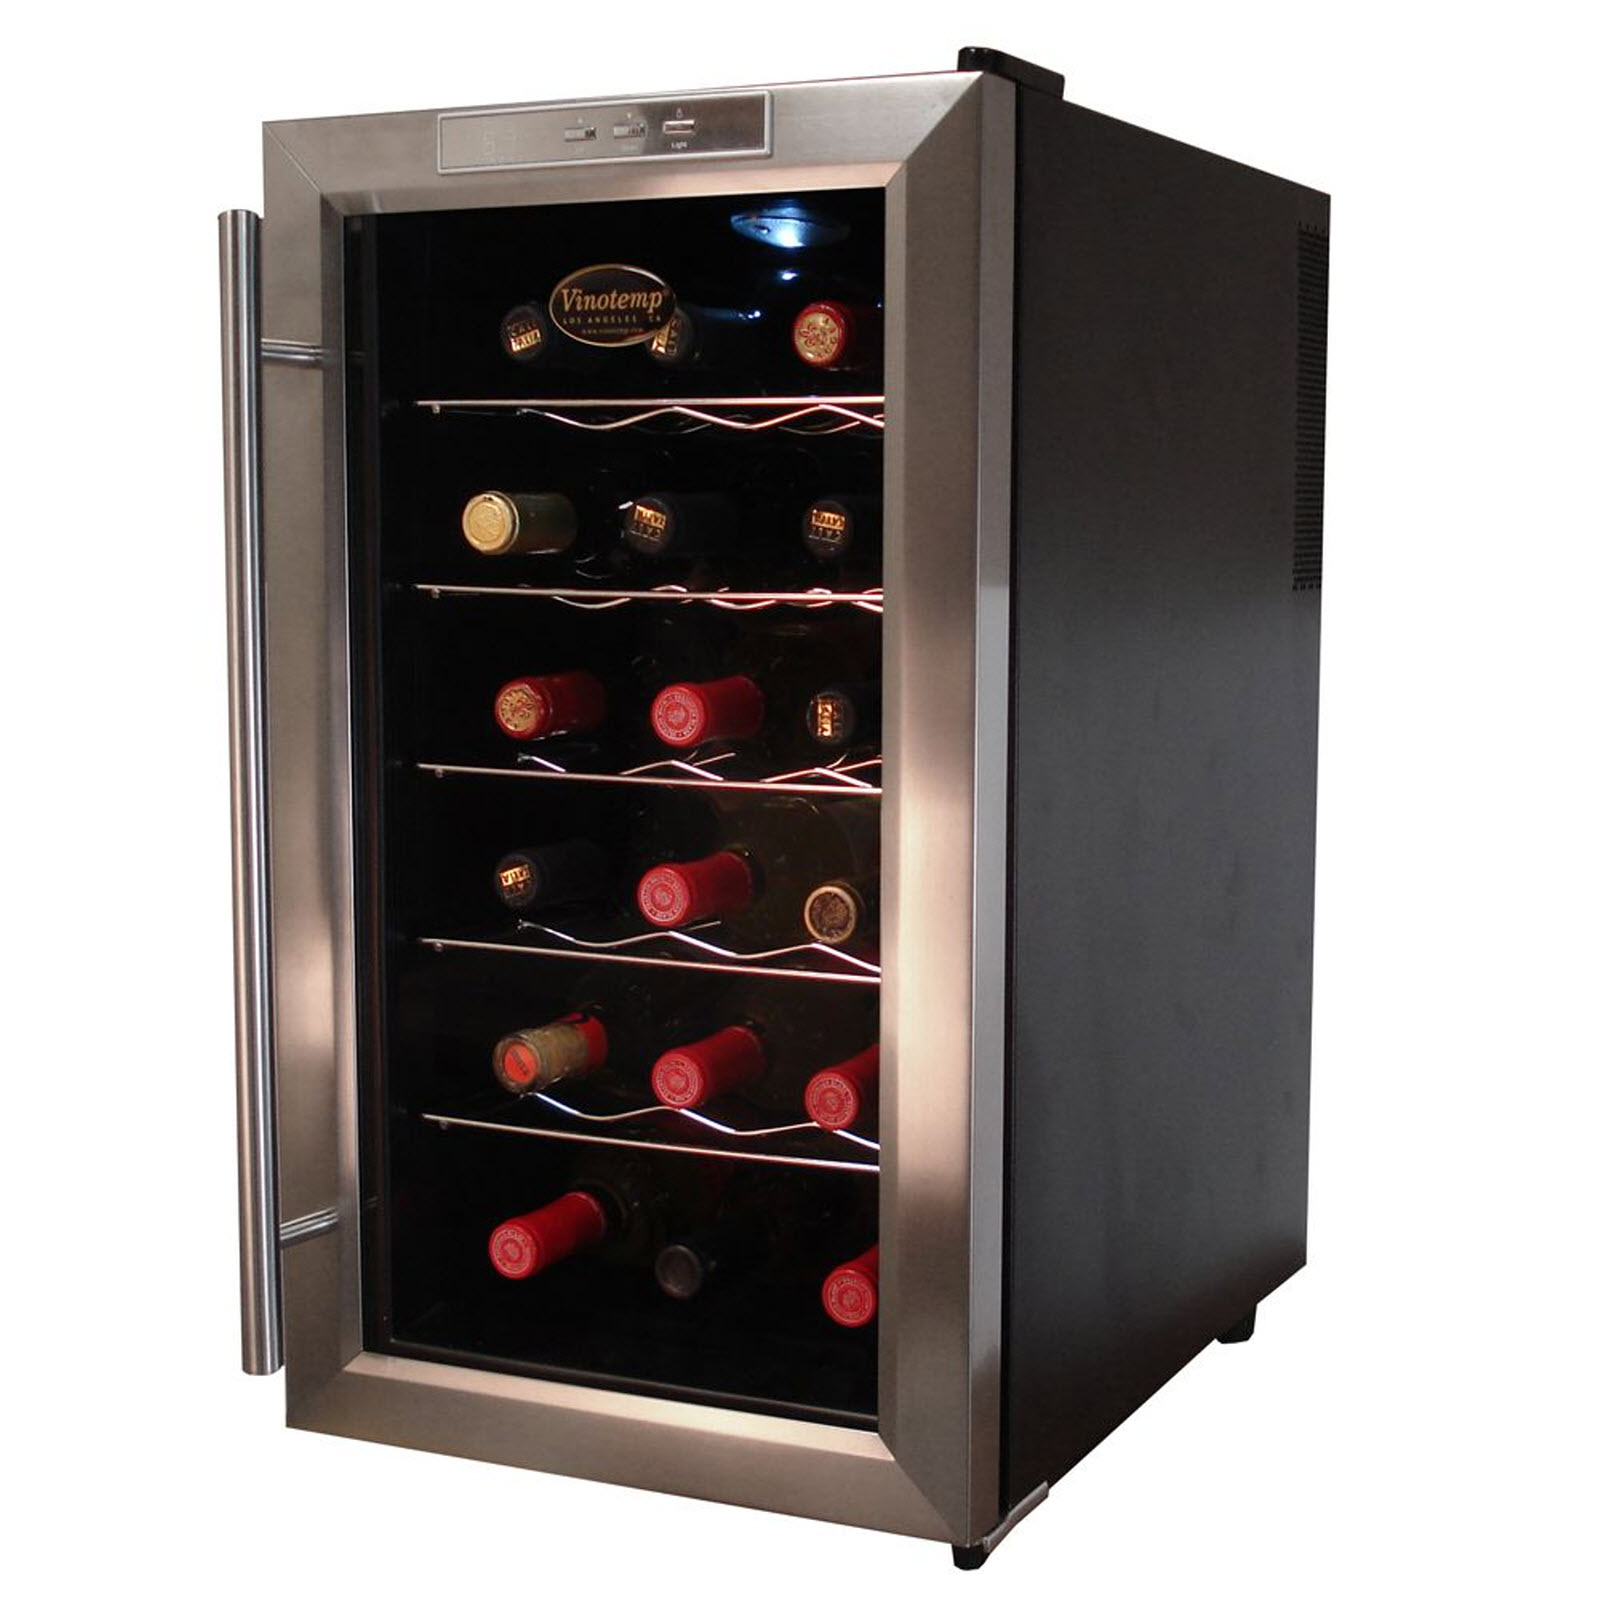 Vinotemp 18 Bottle Thermo-Electric Wine Cooler